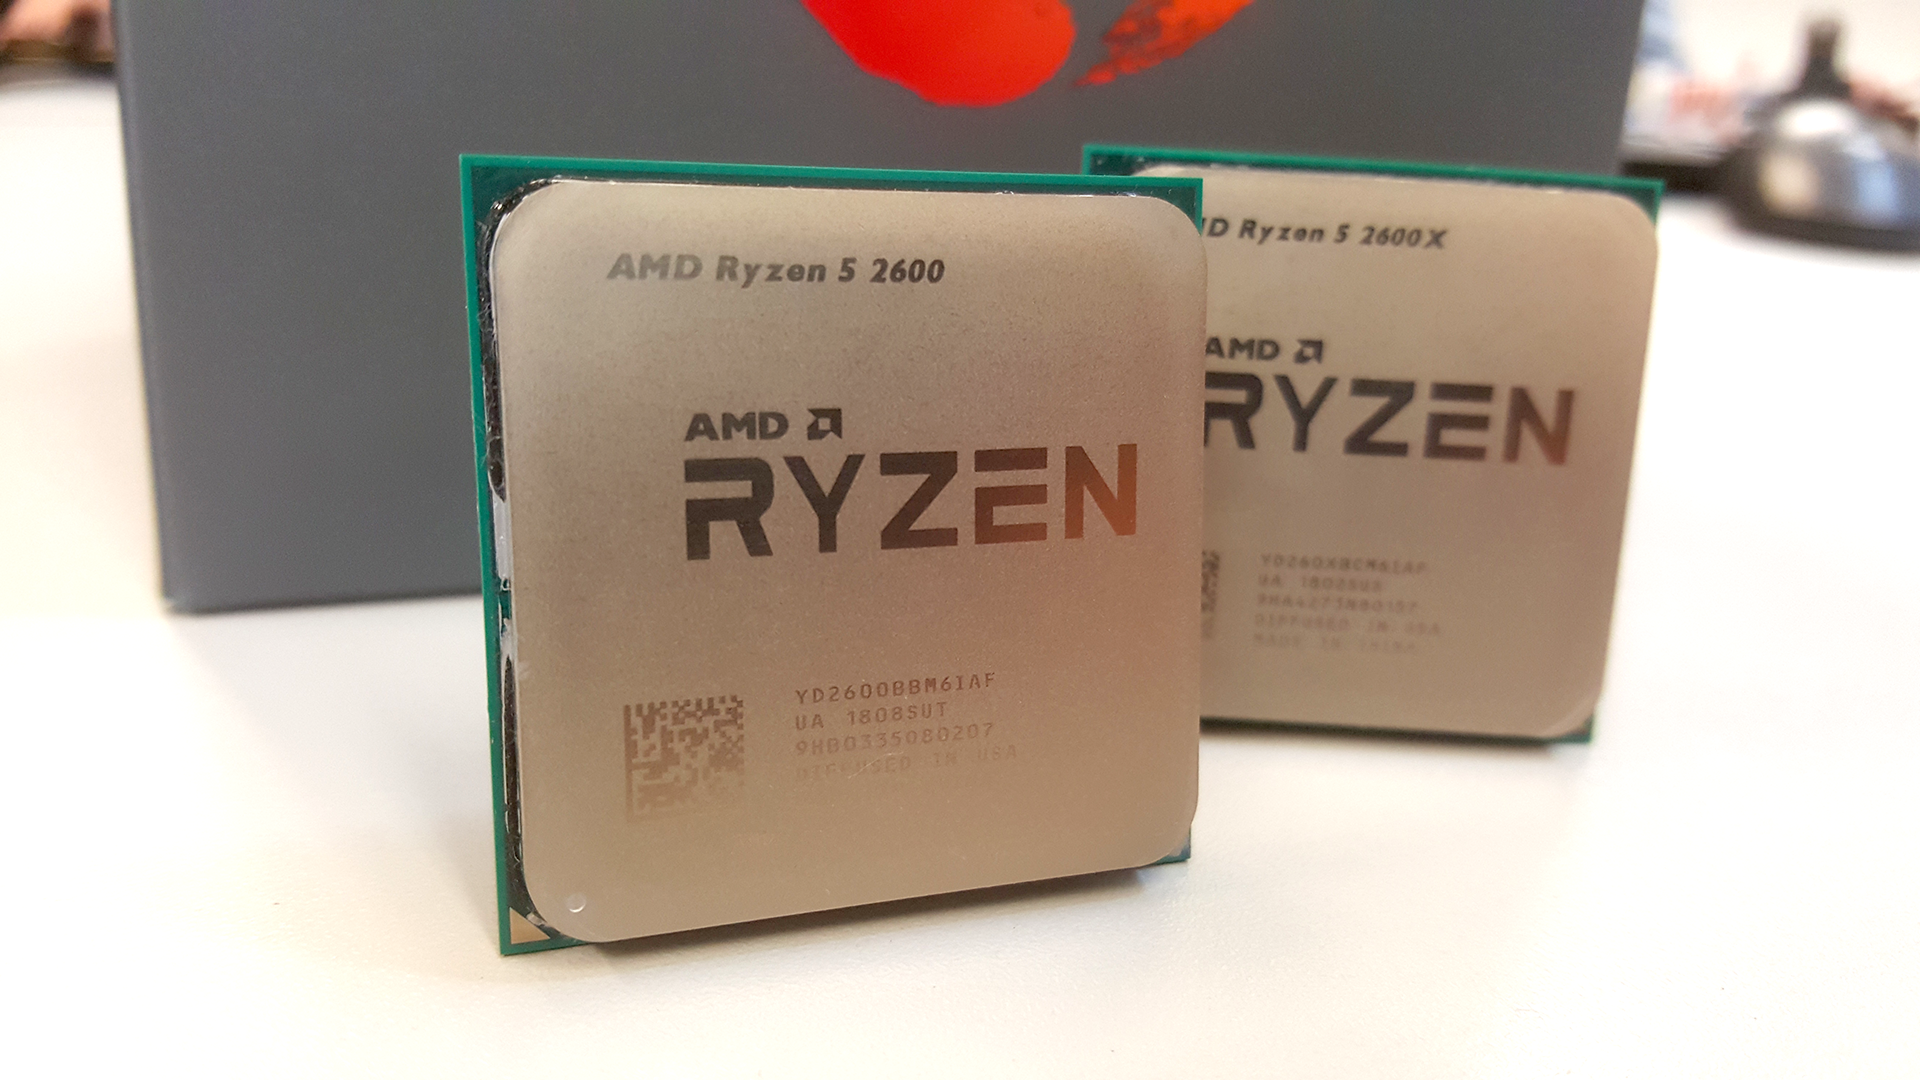 AMD Ryzen 5 2600 review: you won't miss the X from this great gaming